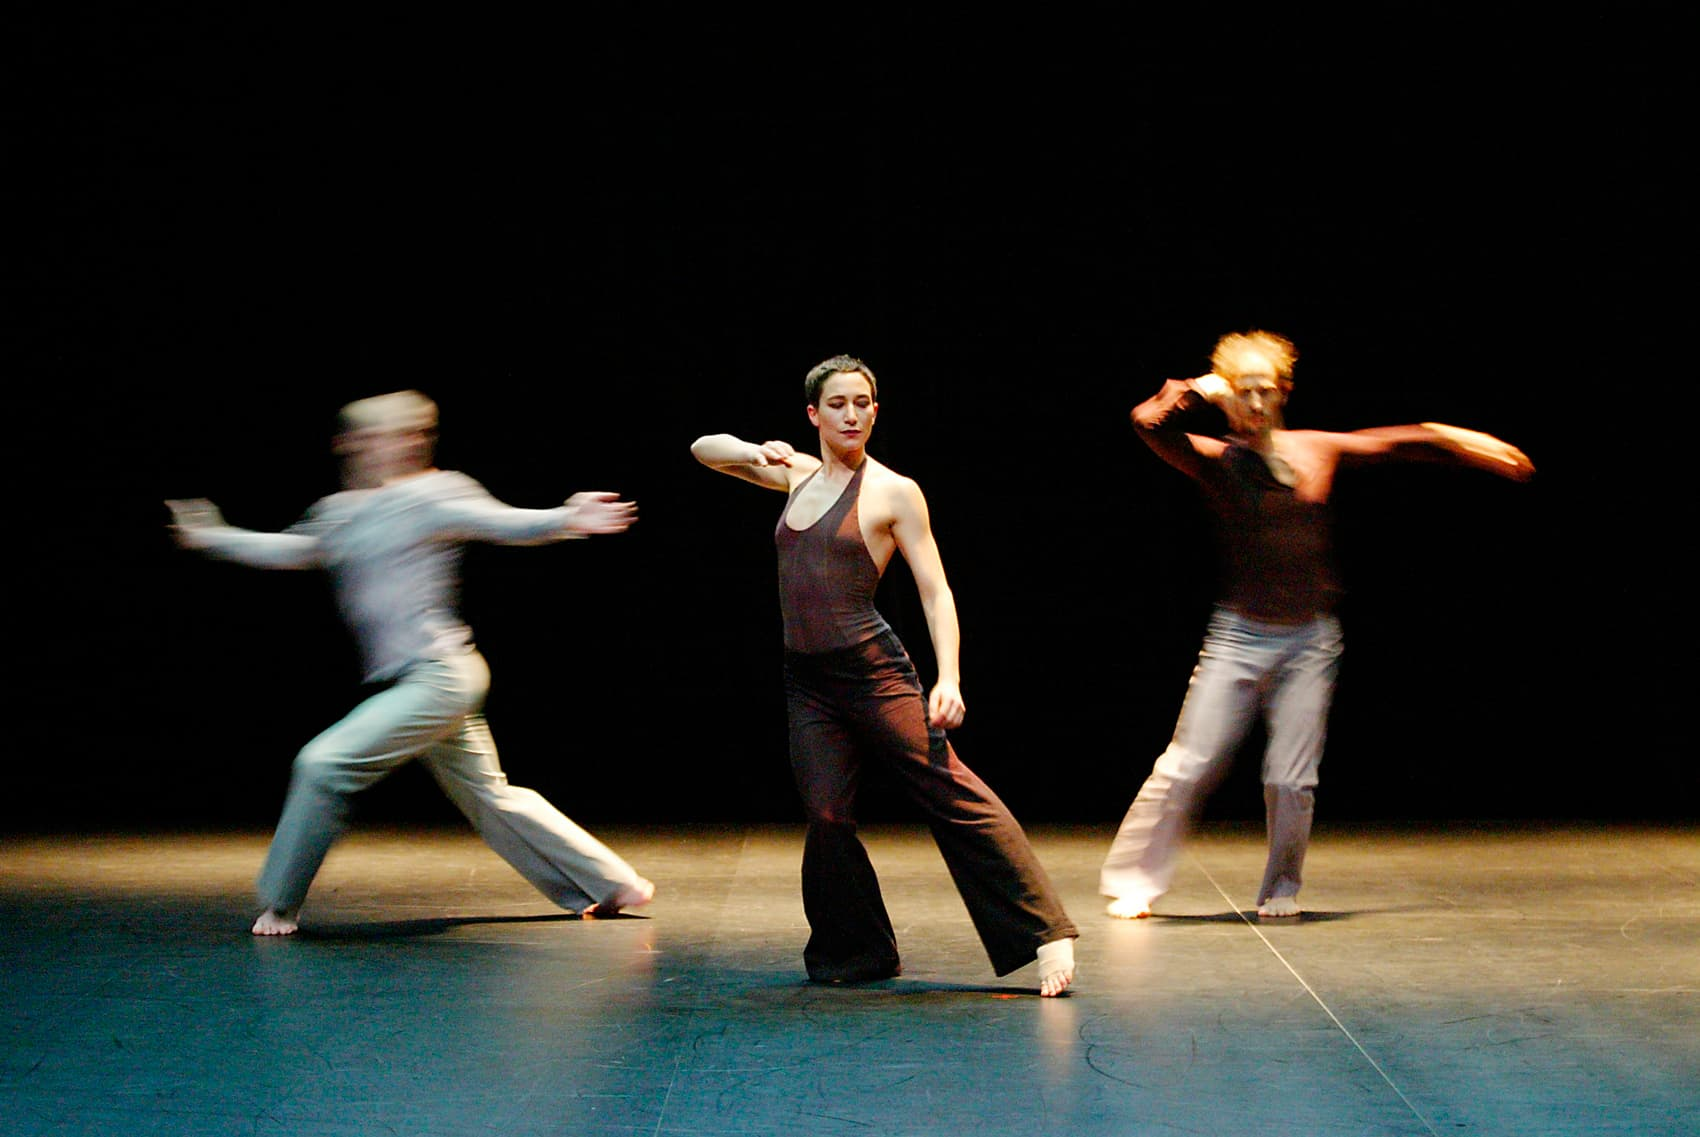 FIA Costa Rica: Dancers at the International Arts Festival